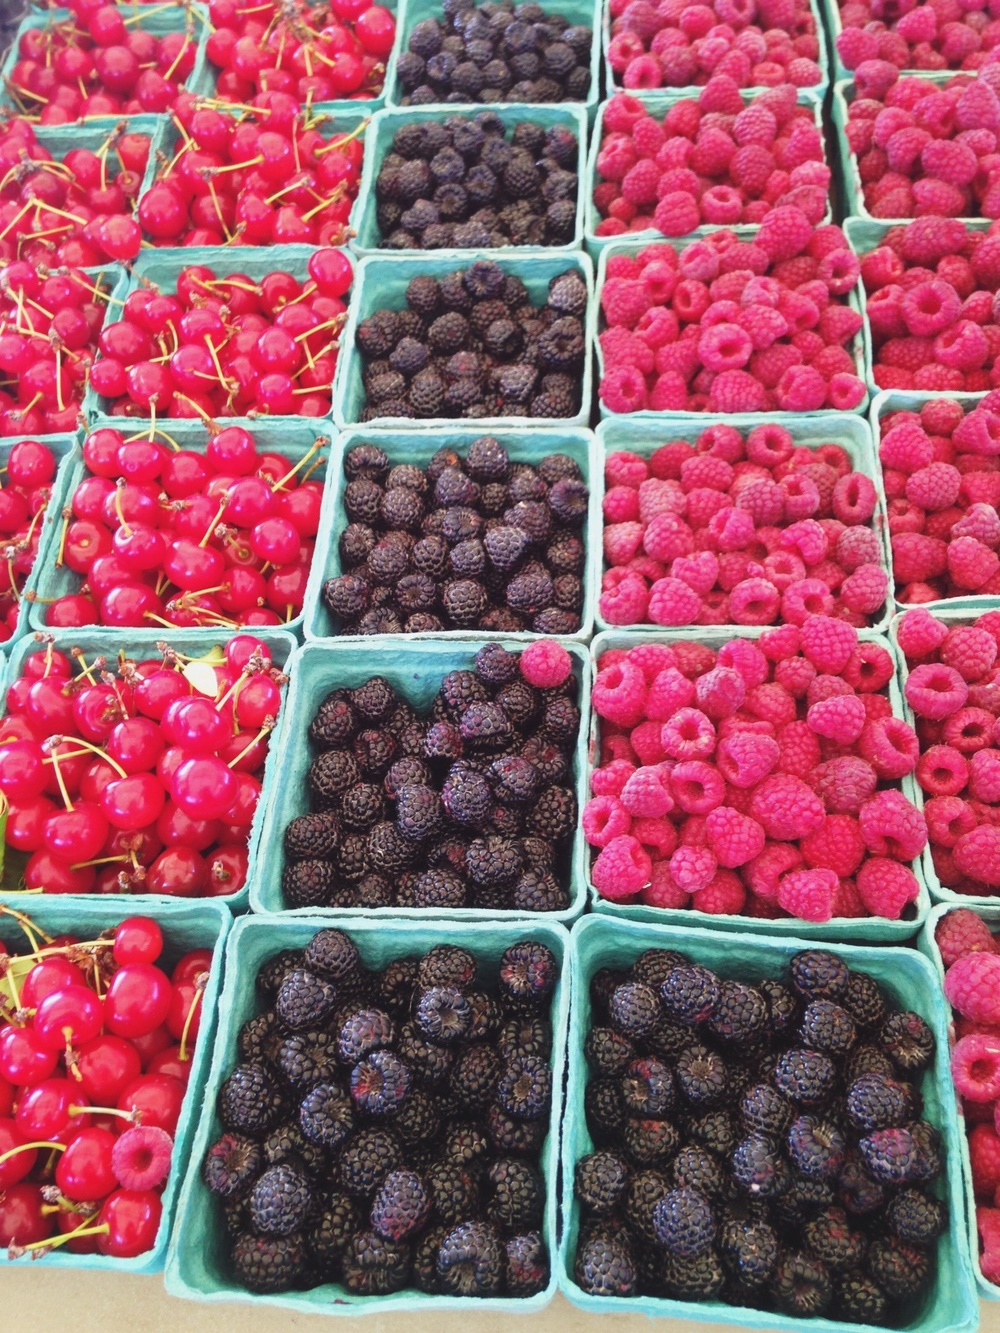 Berries galore at local farmers market